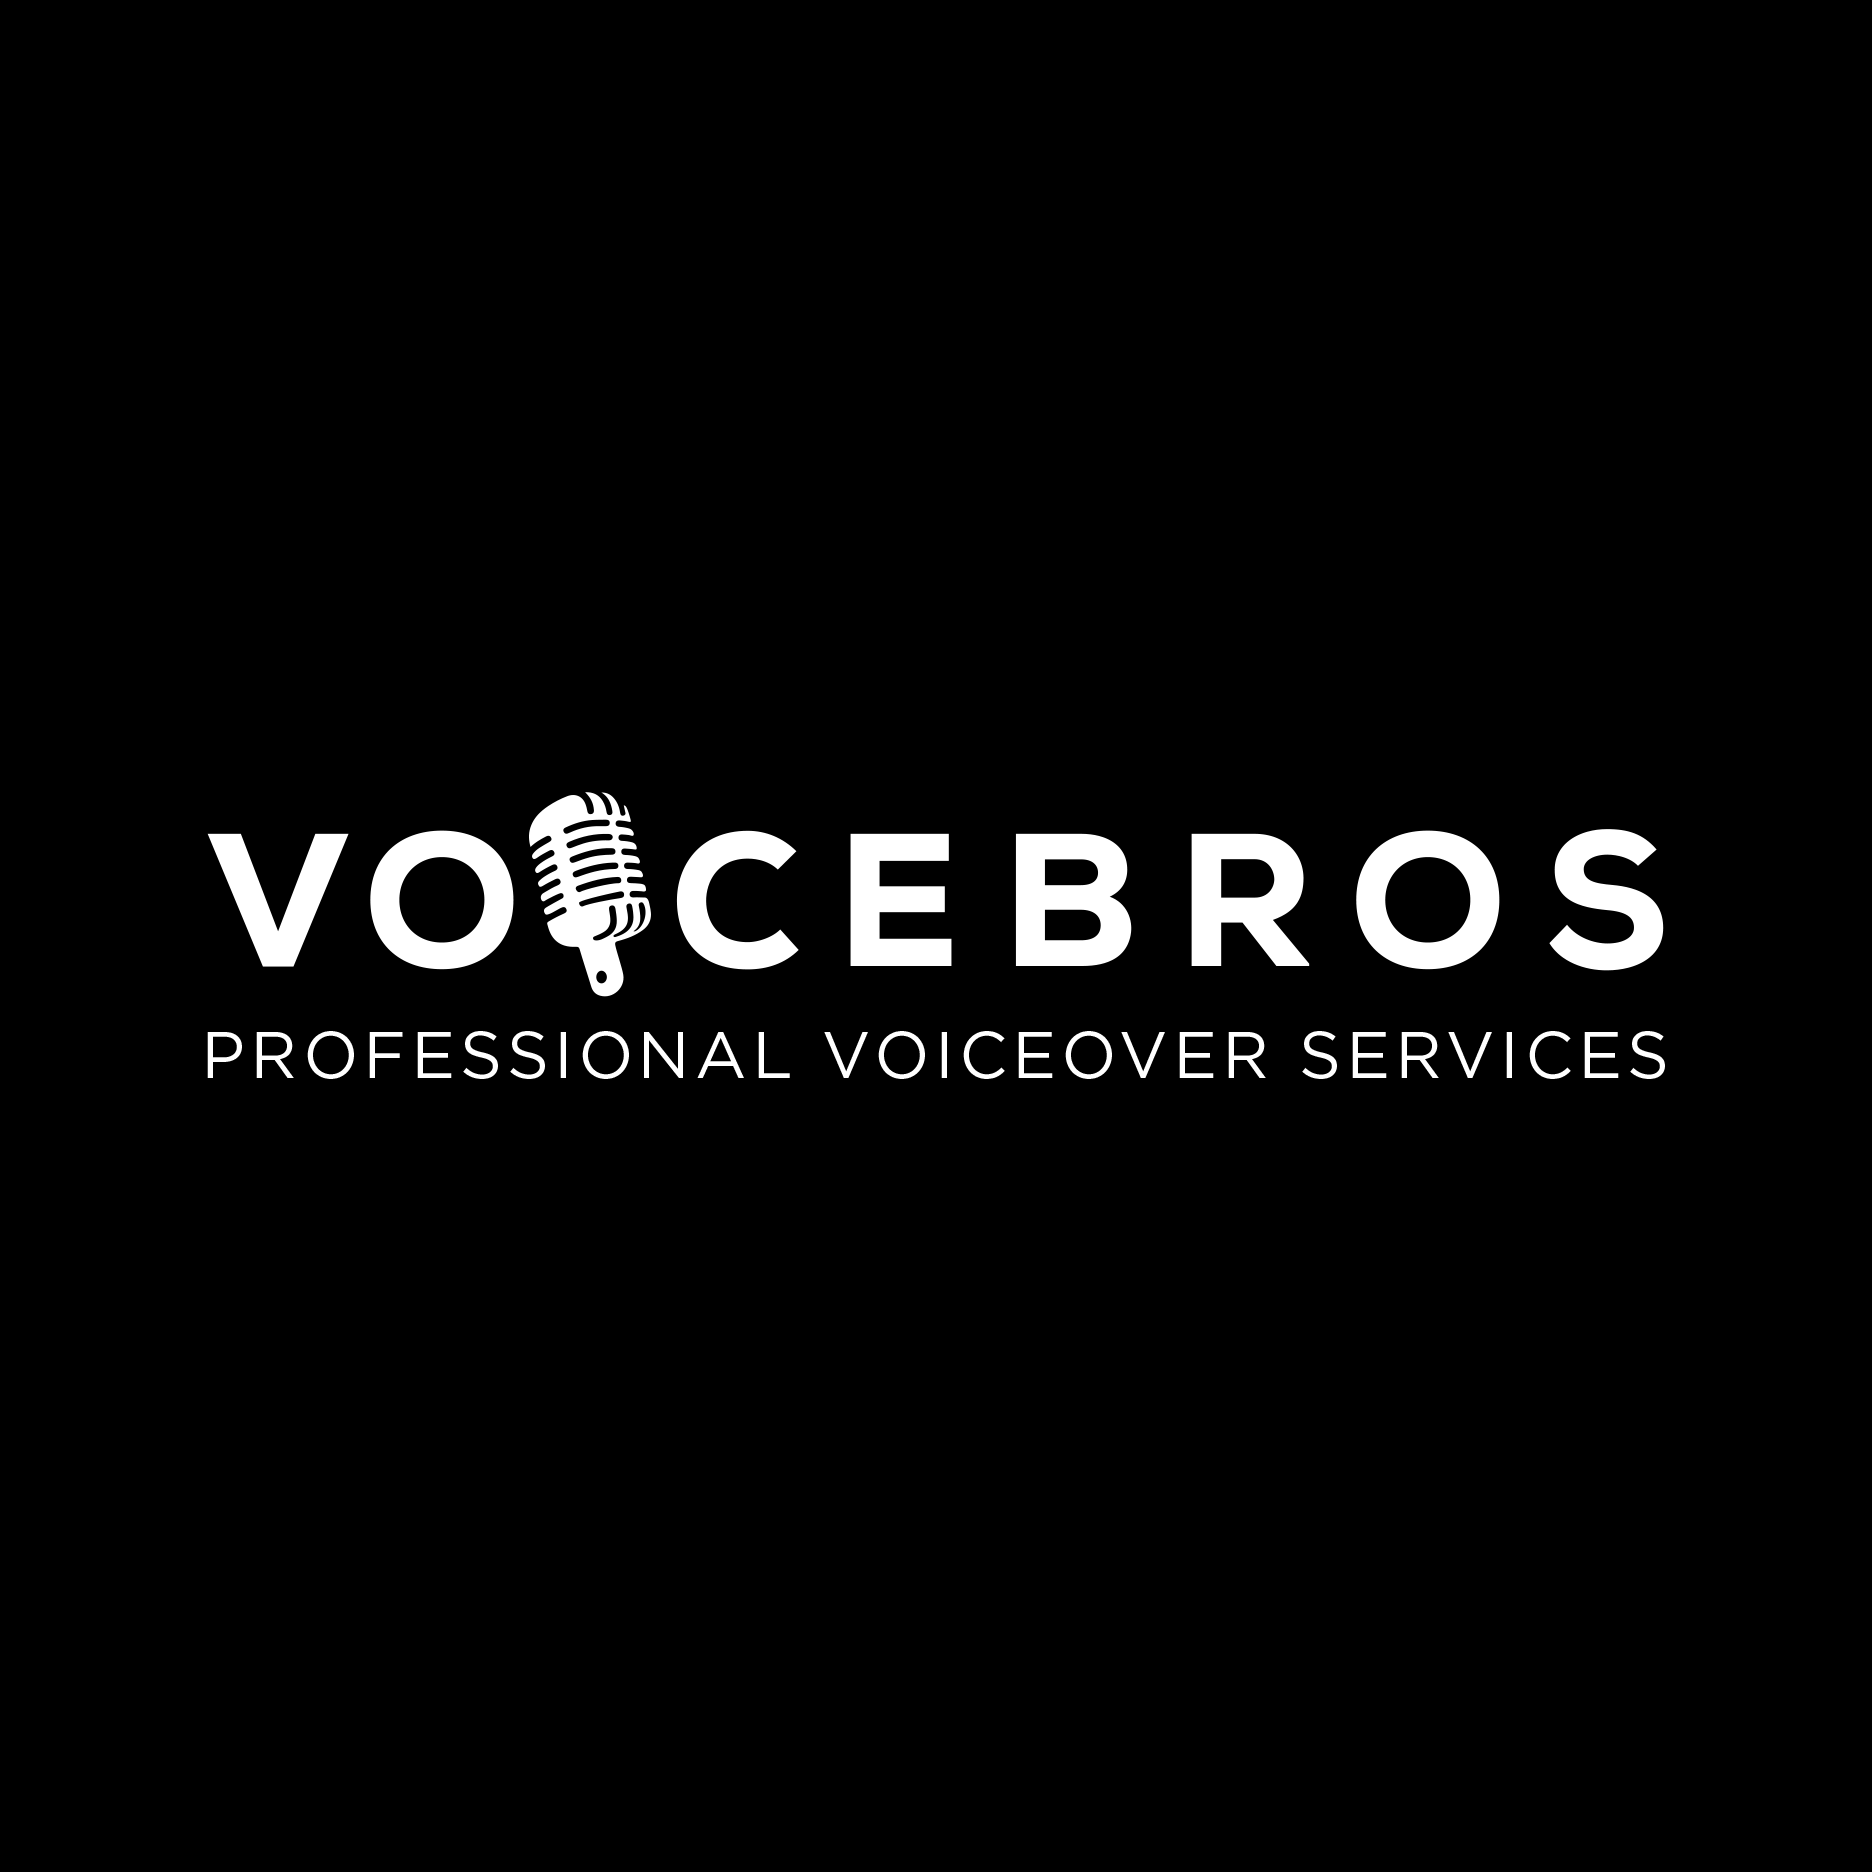 Richard Del Olmo is a voice over actor